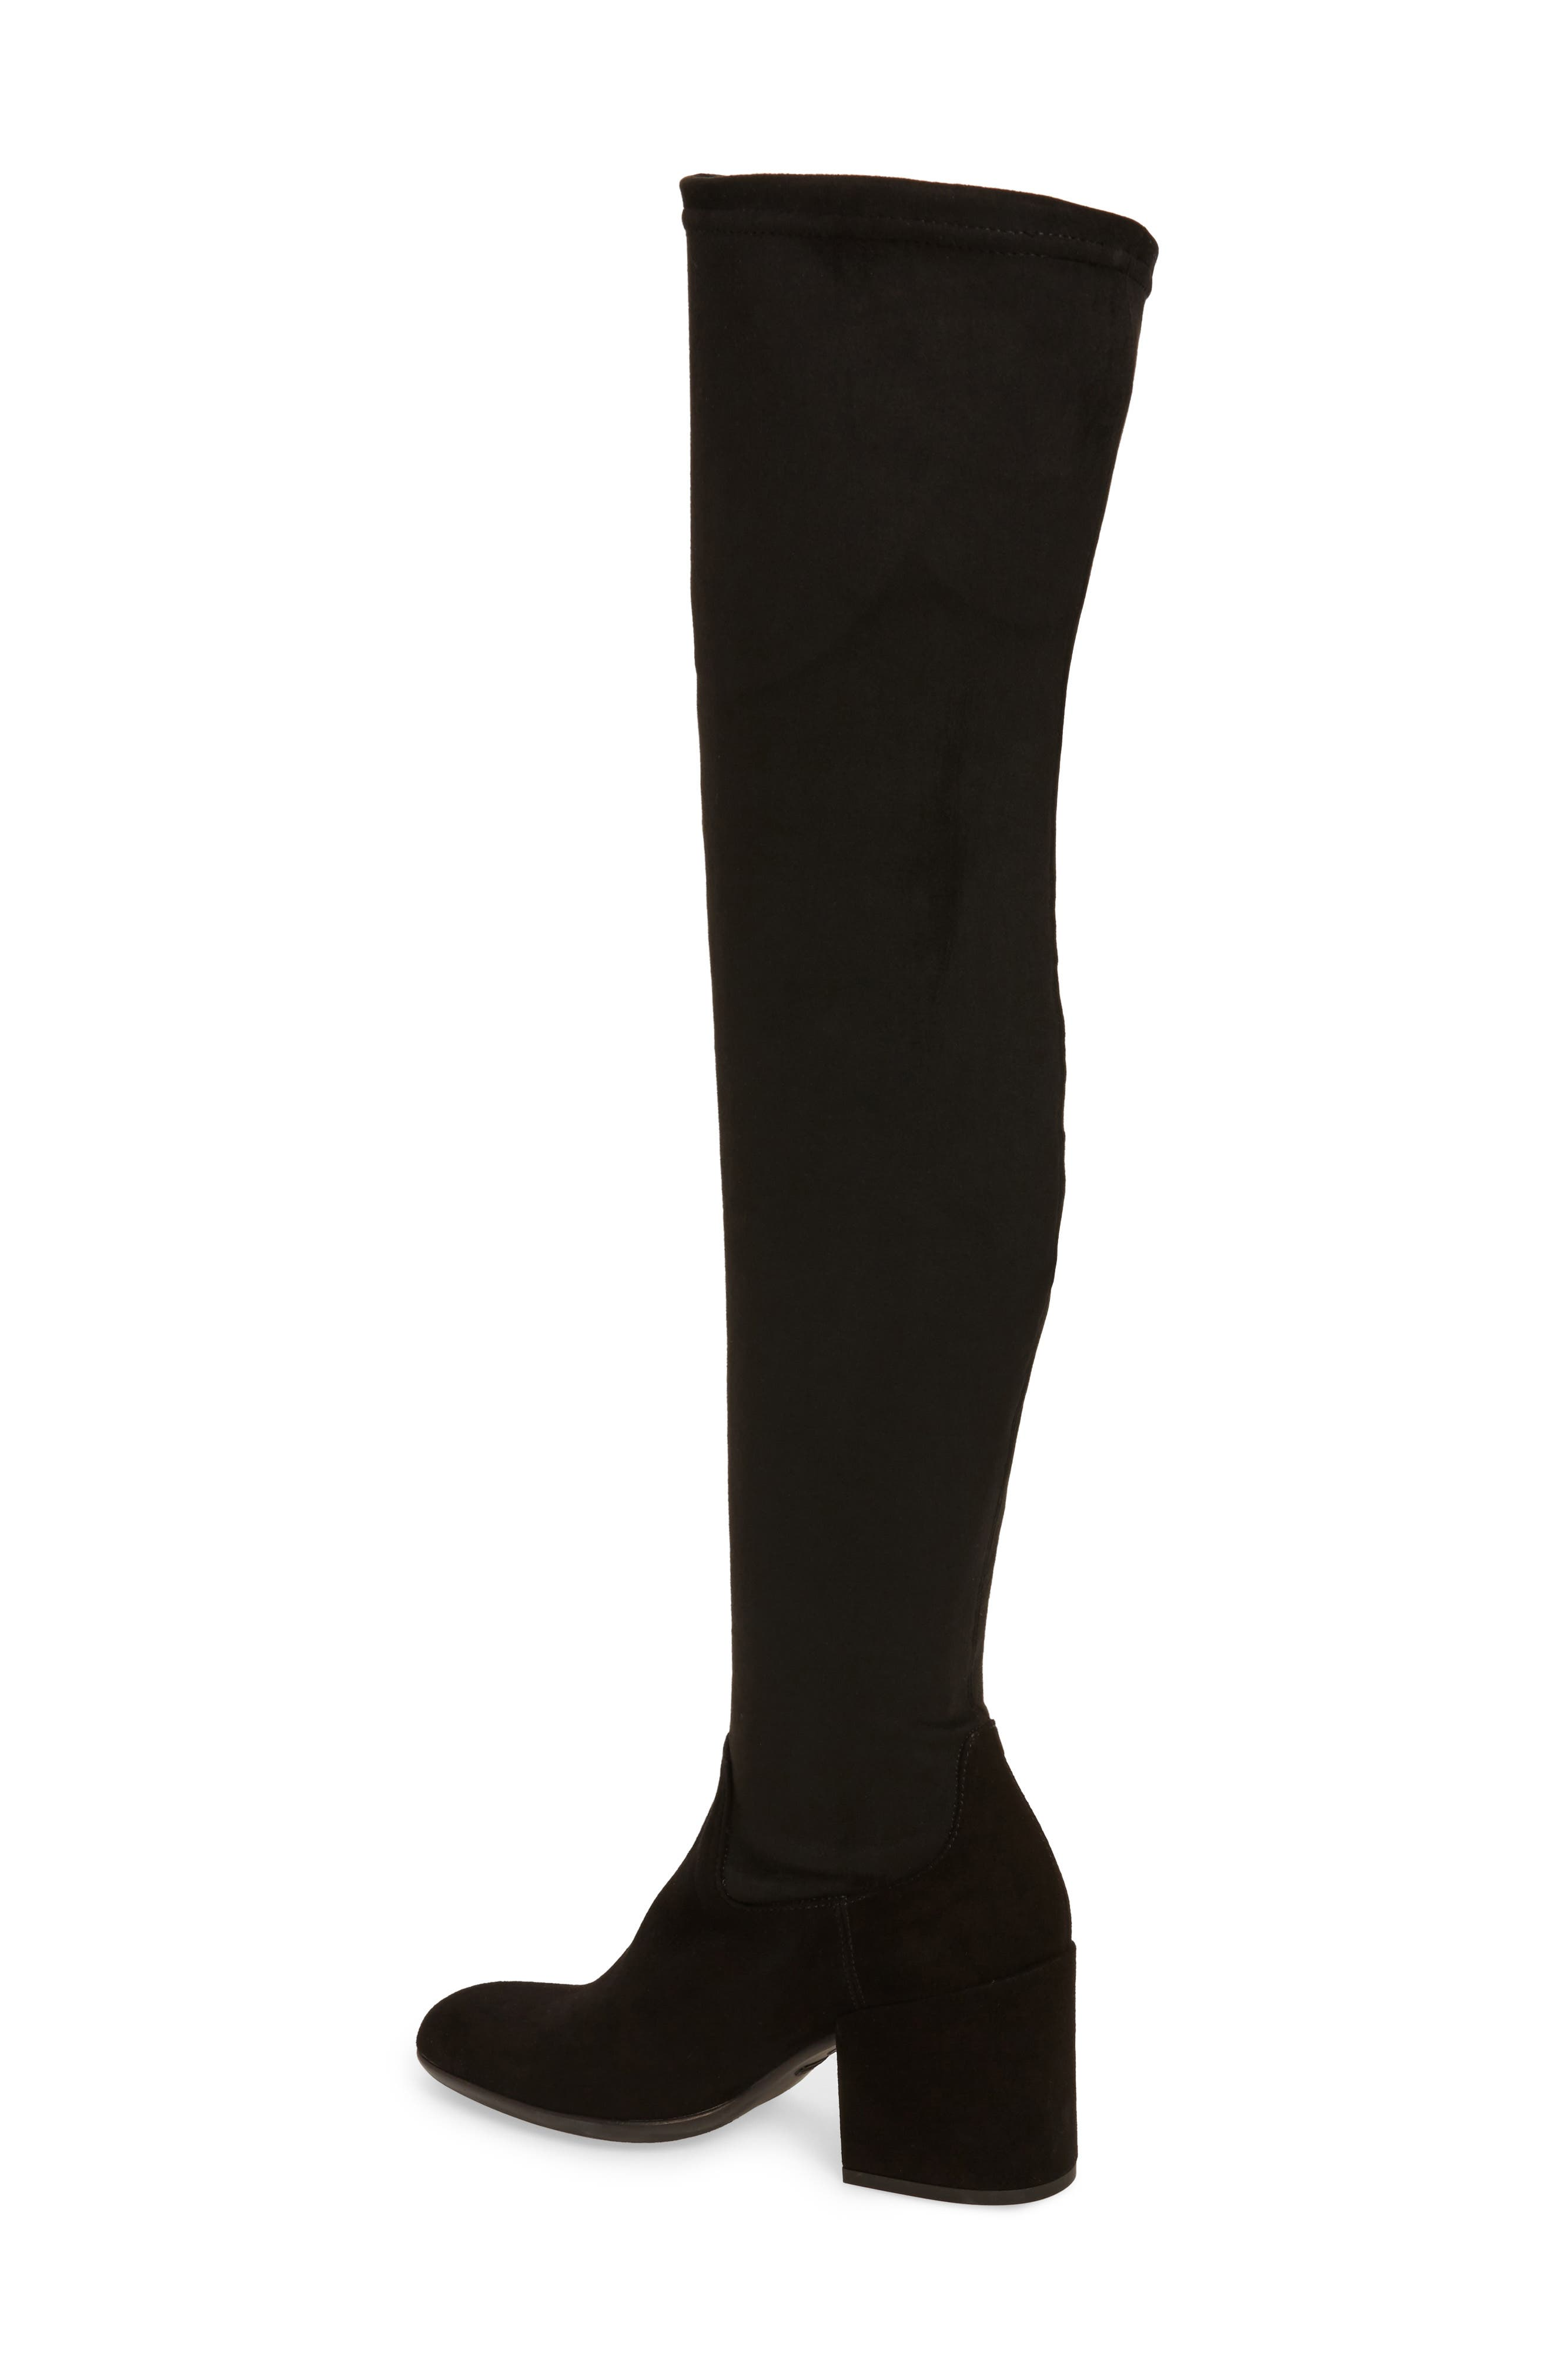 Verve Over the Knee Boot,                             Alternate thumbnail 2, color,                             001